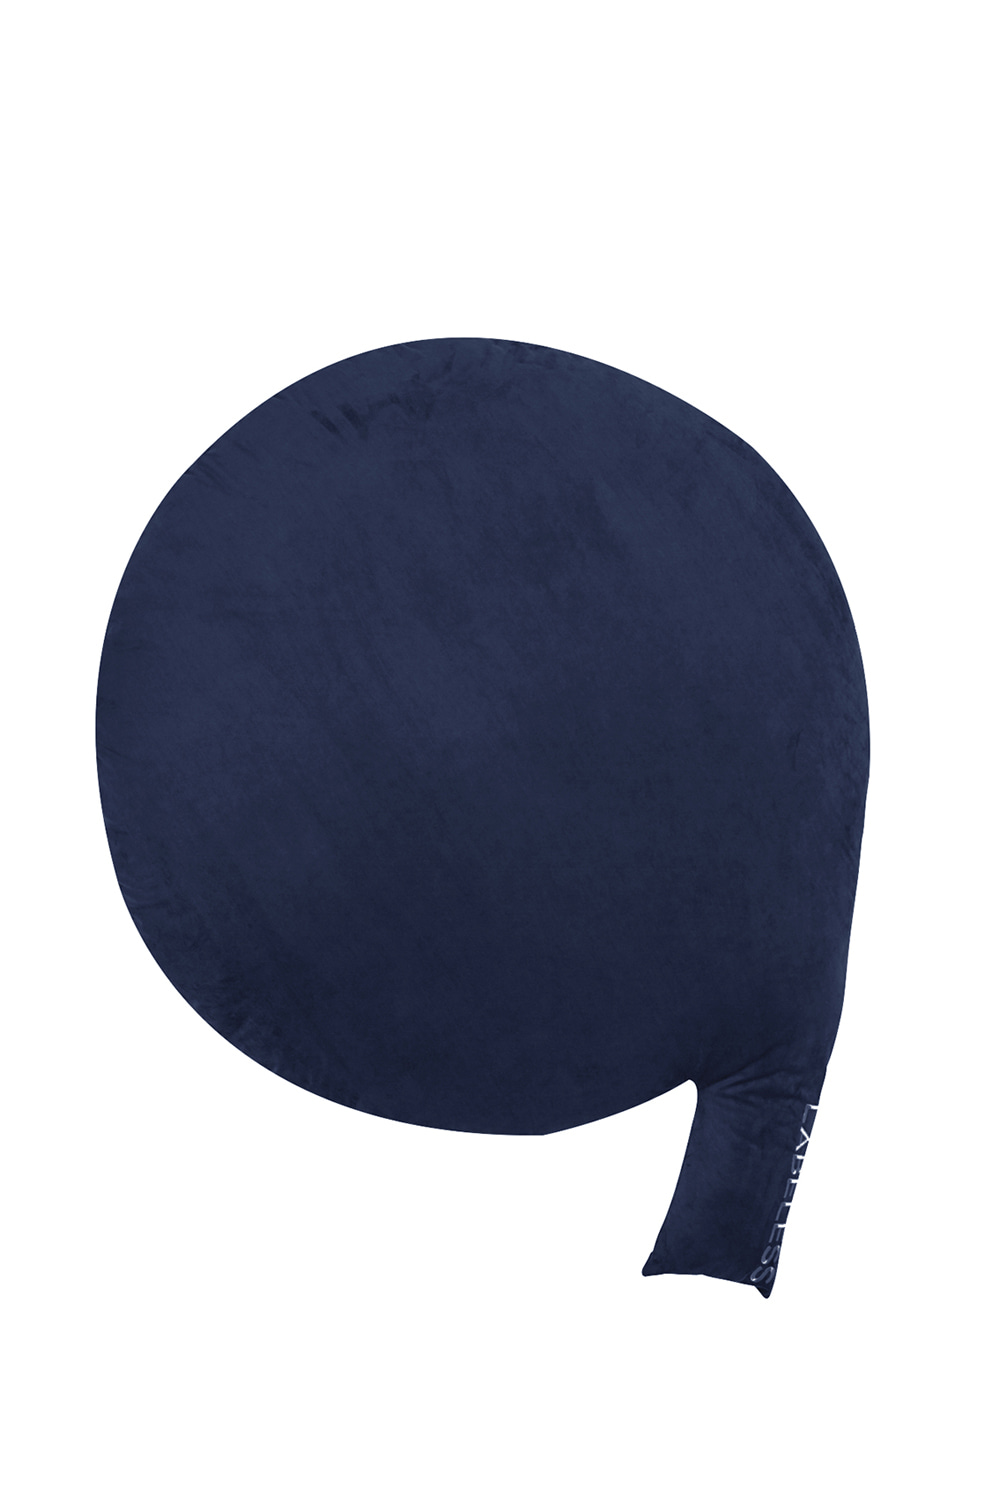 NAVY SUEDE COMMA CUSHION